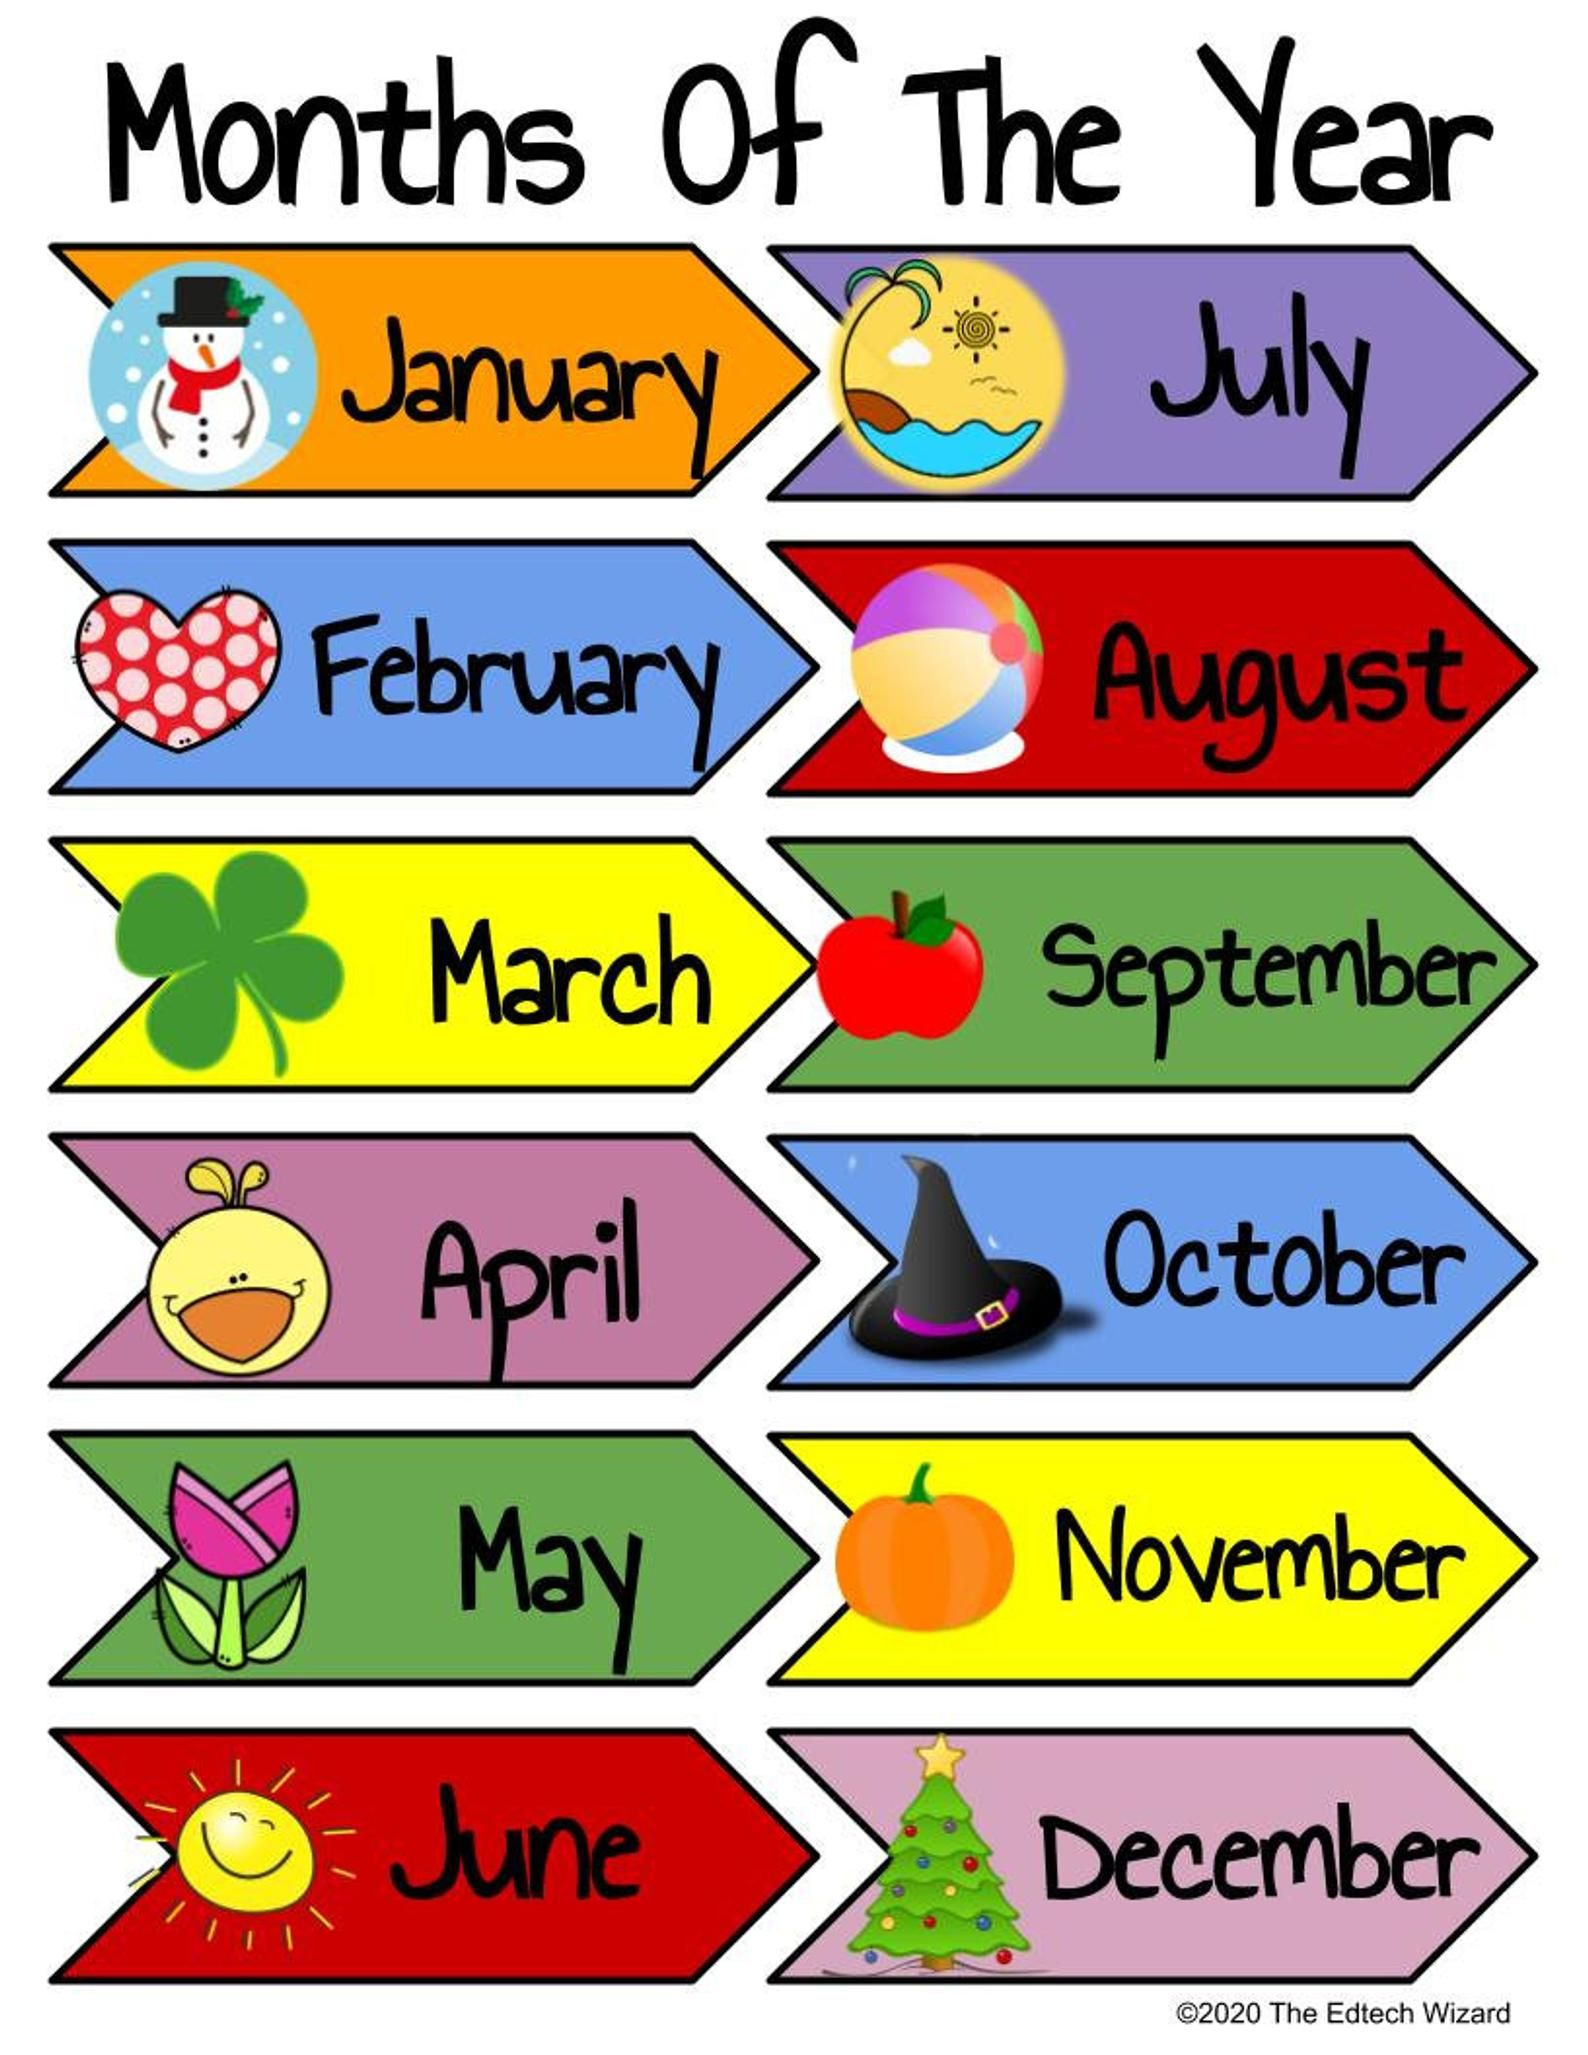 Days Of The Week Months Of The Year Printable Vipkid